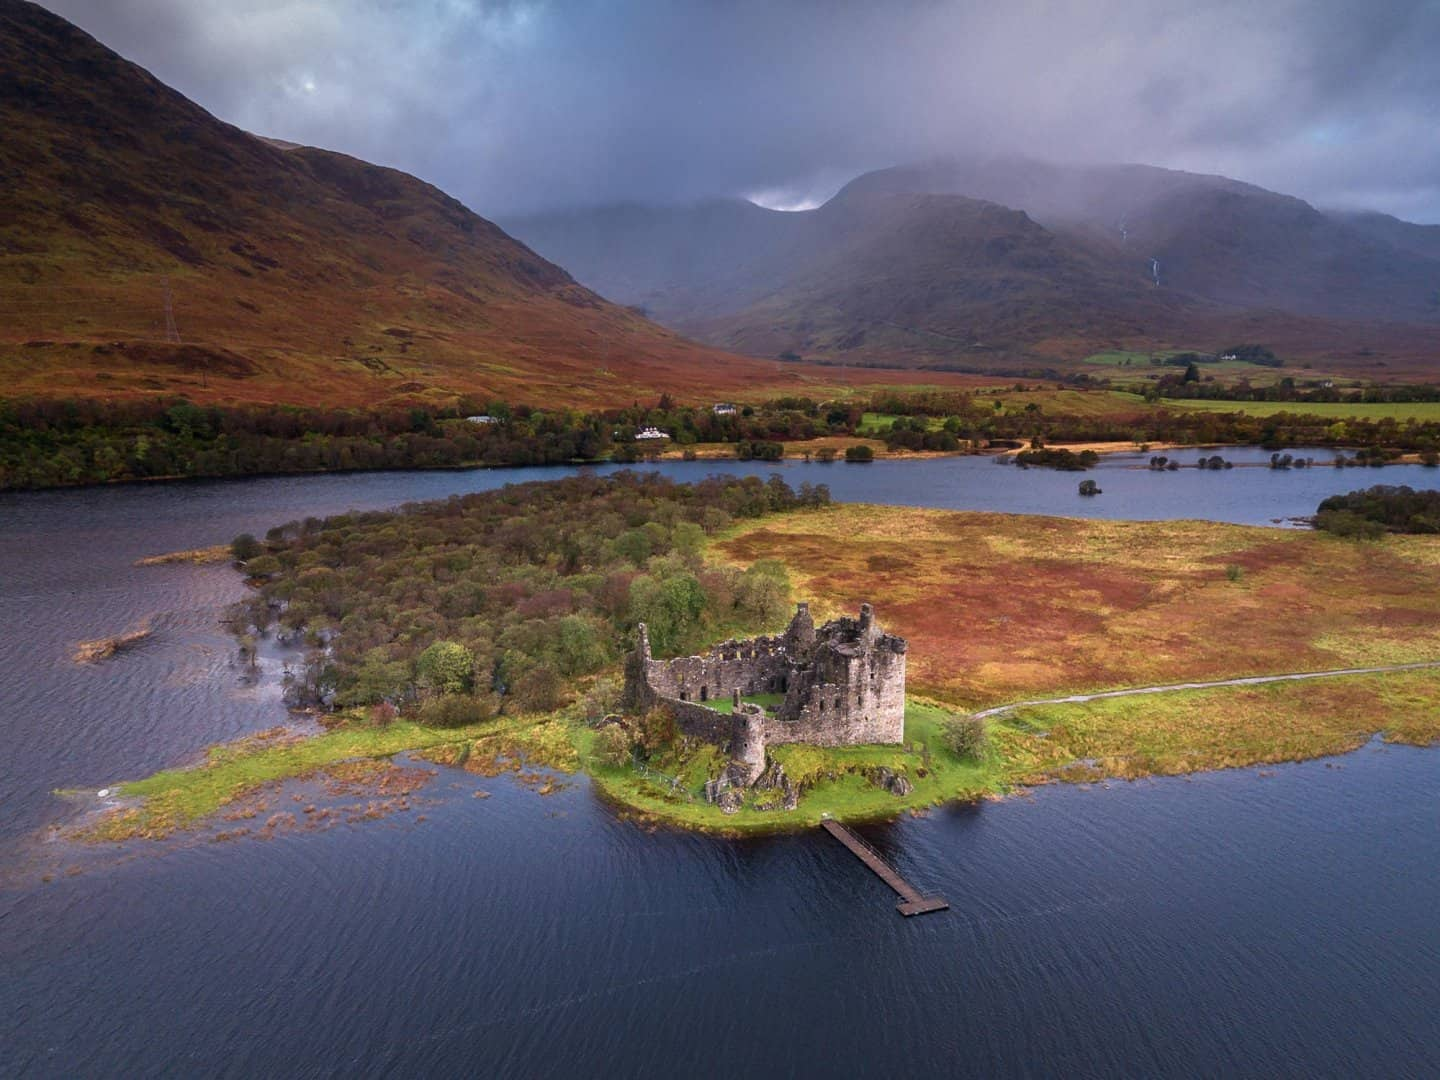 One of the best castles in Scotland: A drone photo of Kilchurn Castle surrounded by amazing autumn color.